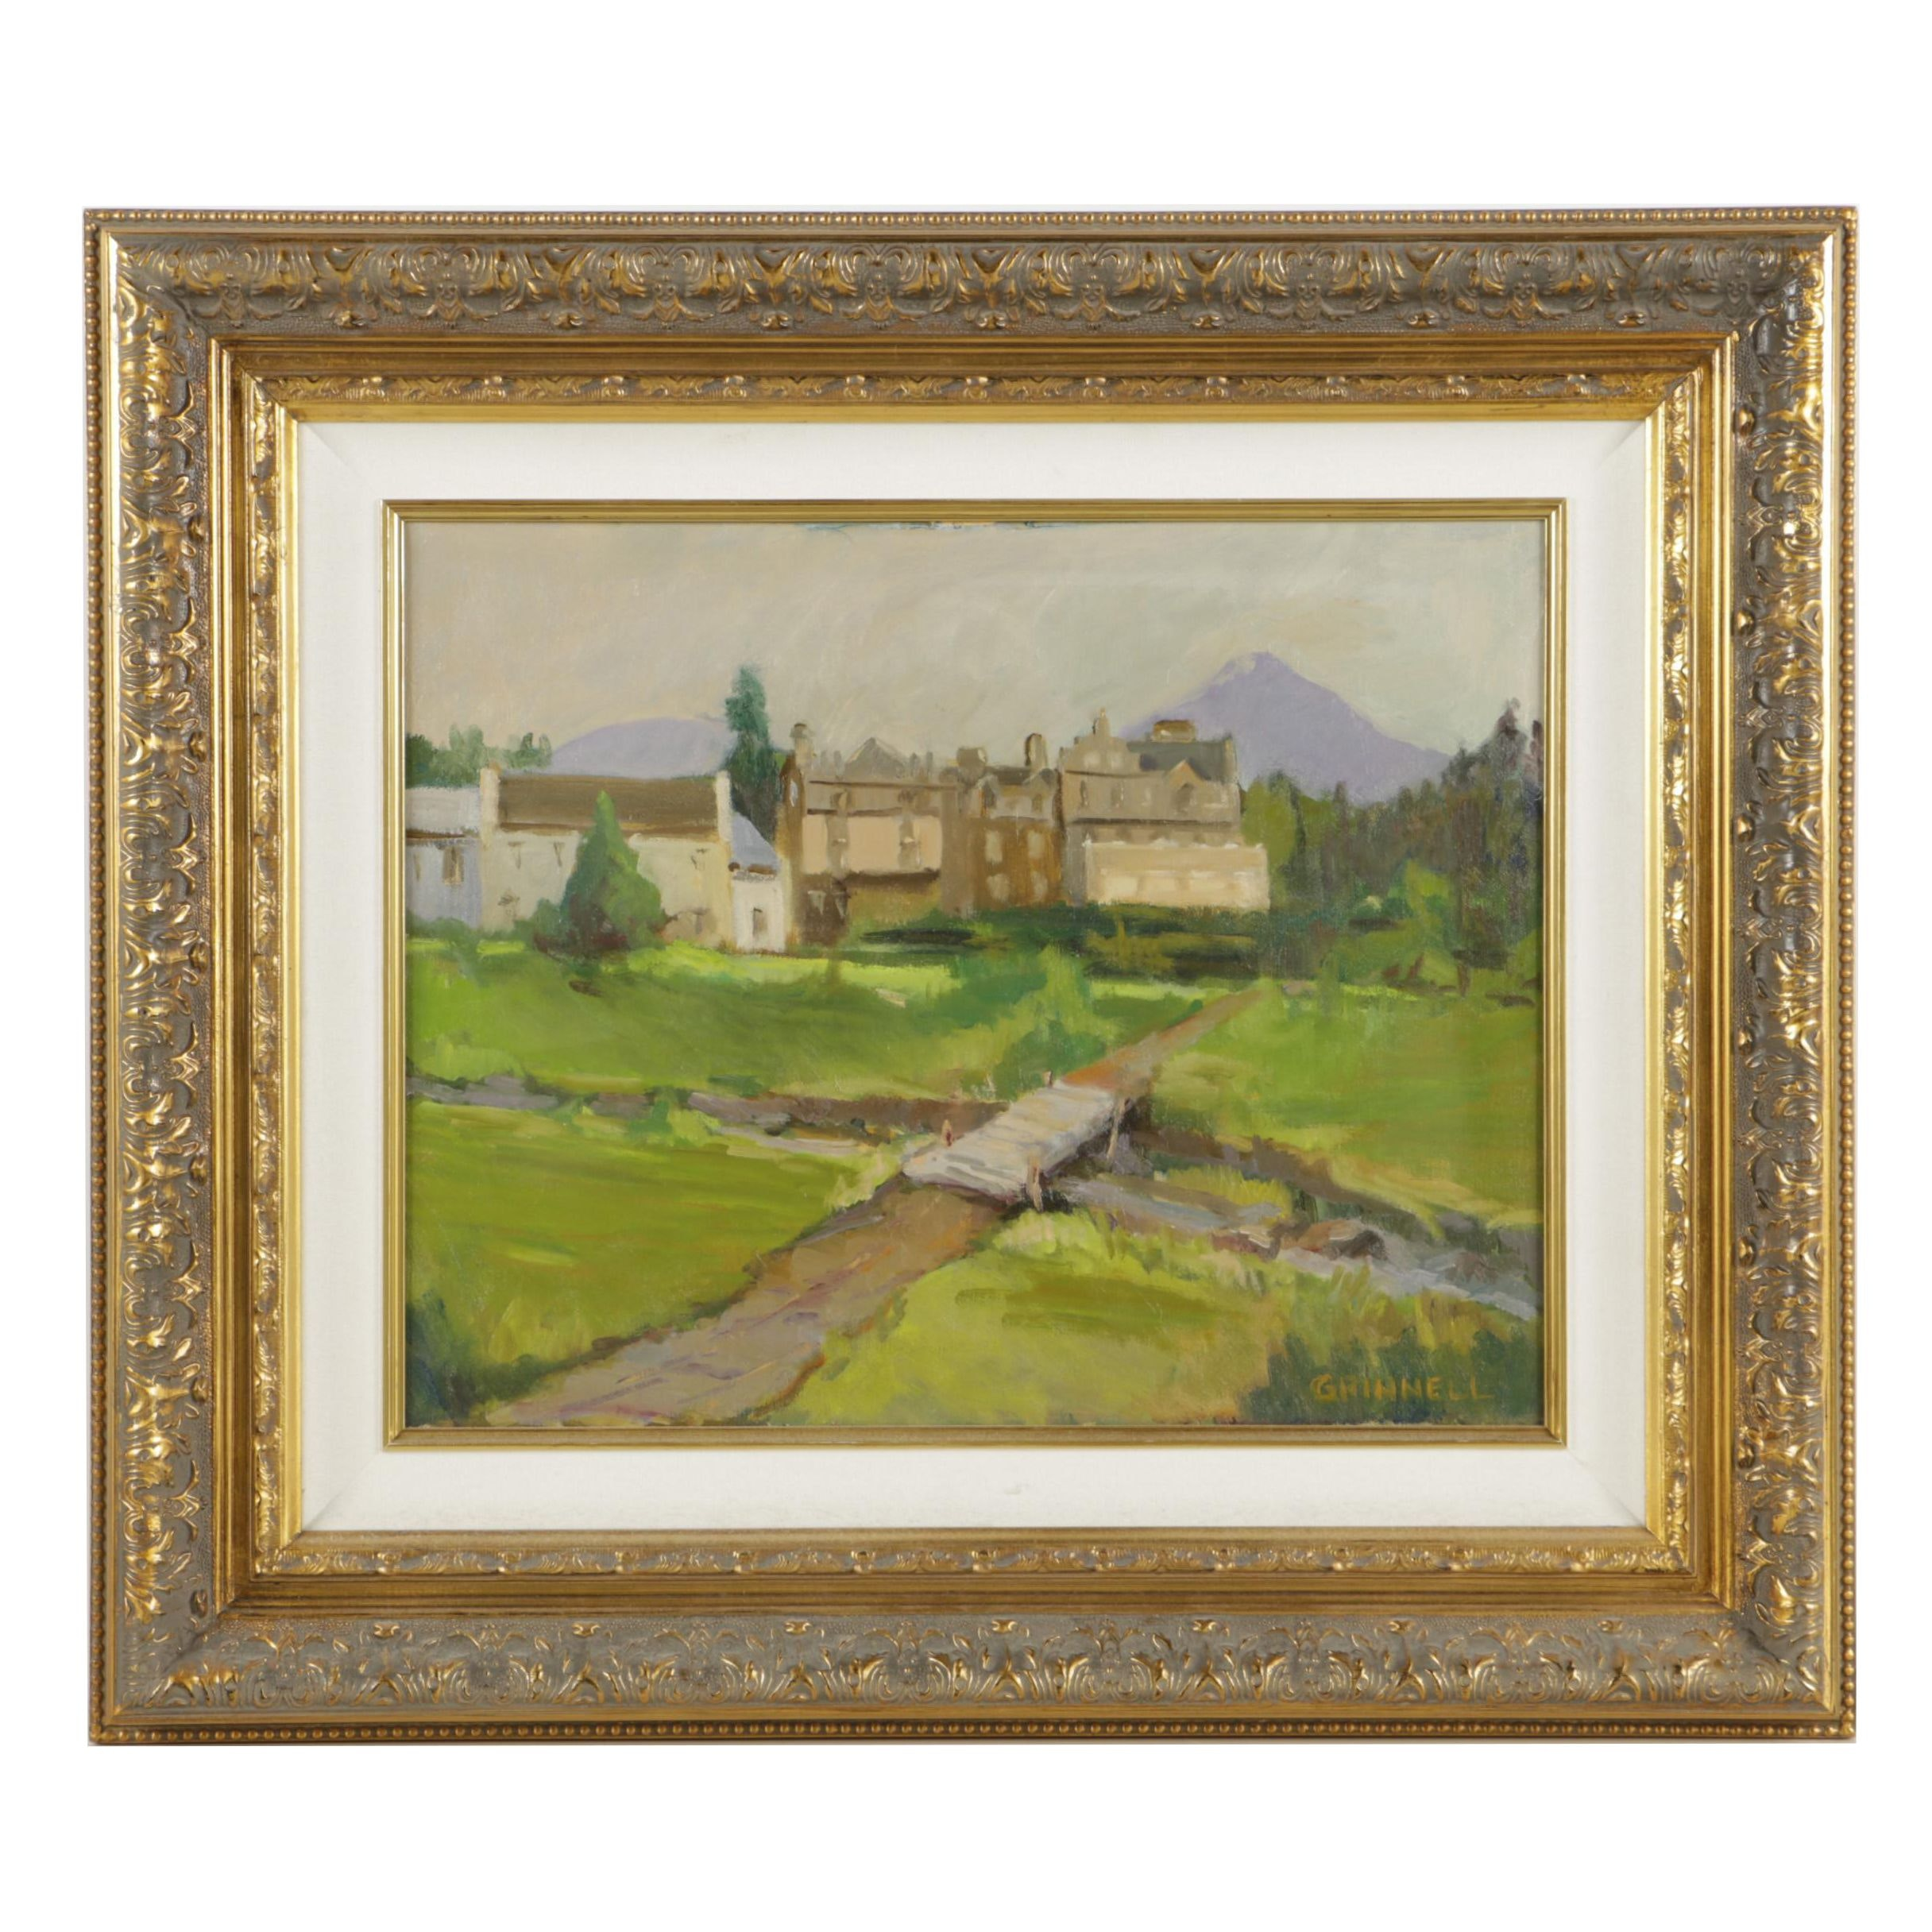 Grinnell Oil Painting on Canvas of Country Estate